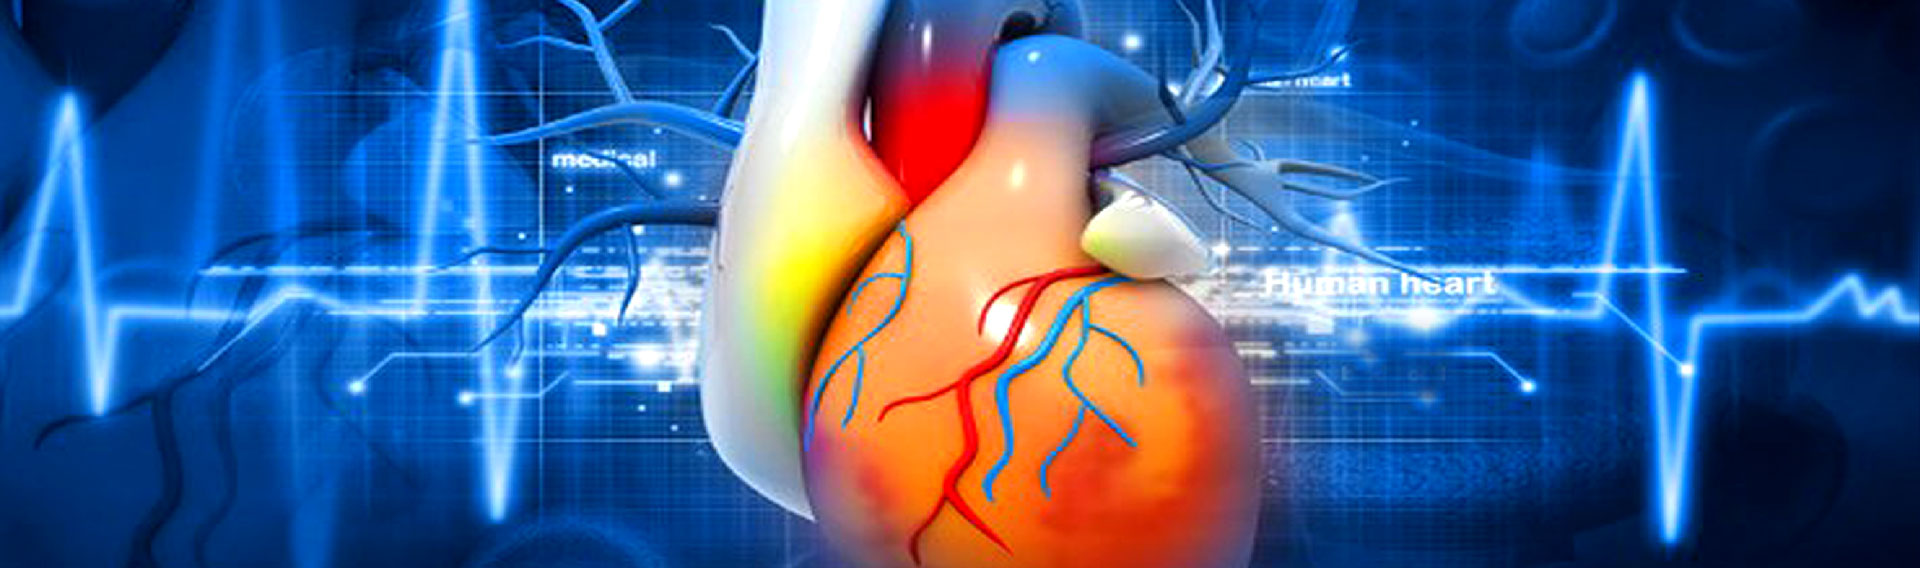 cardiac surgeries in jaipur